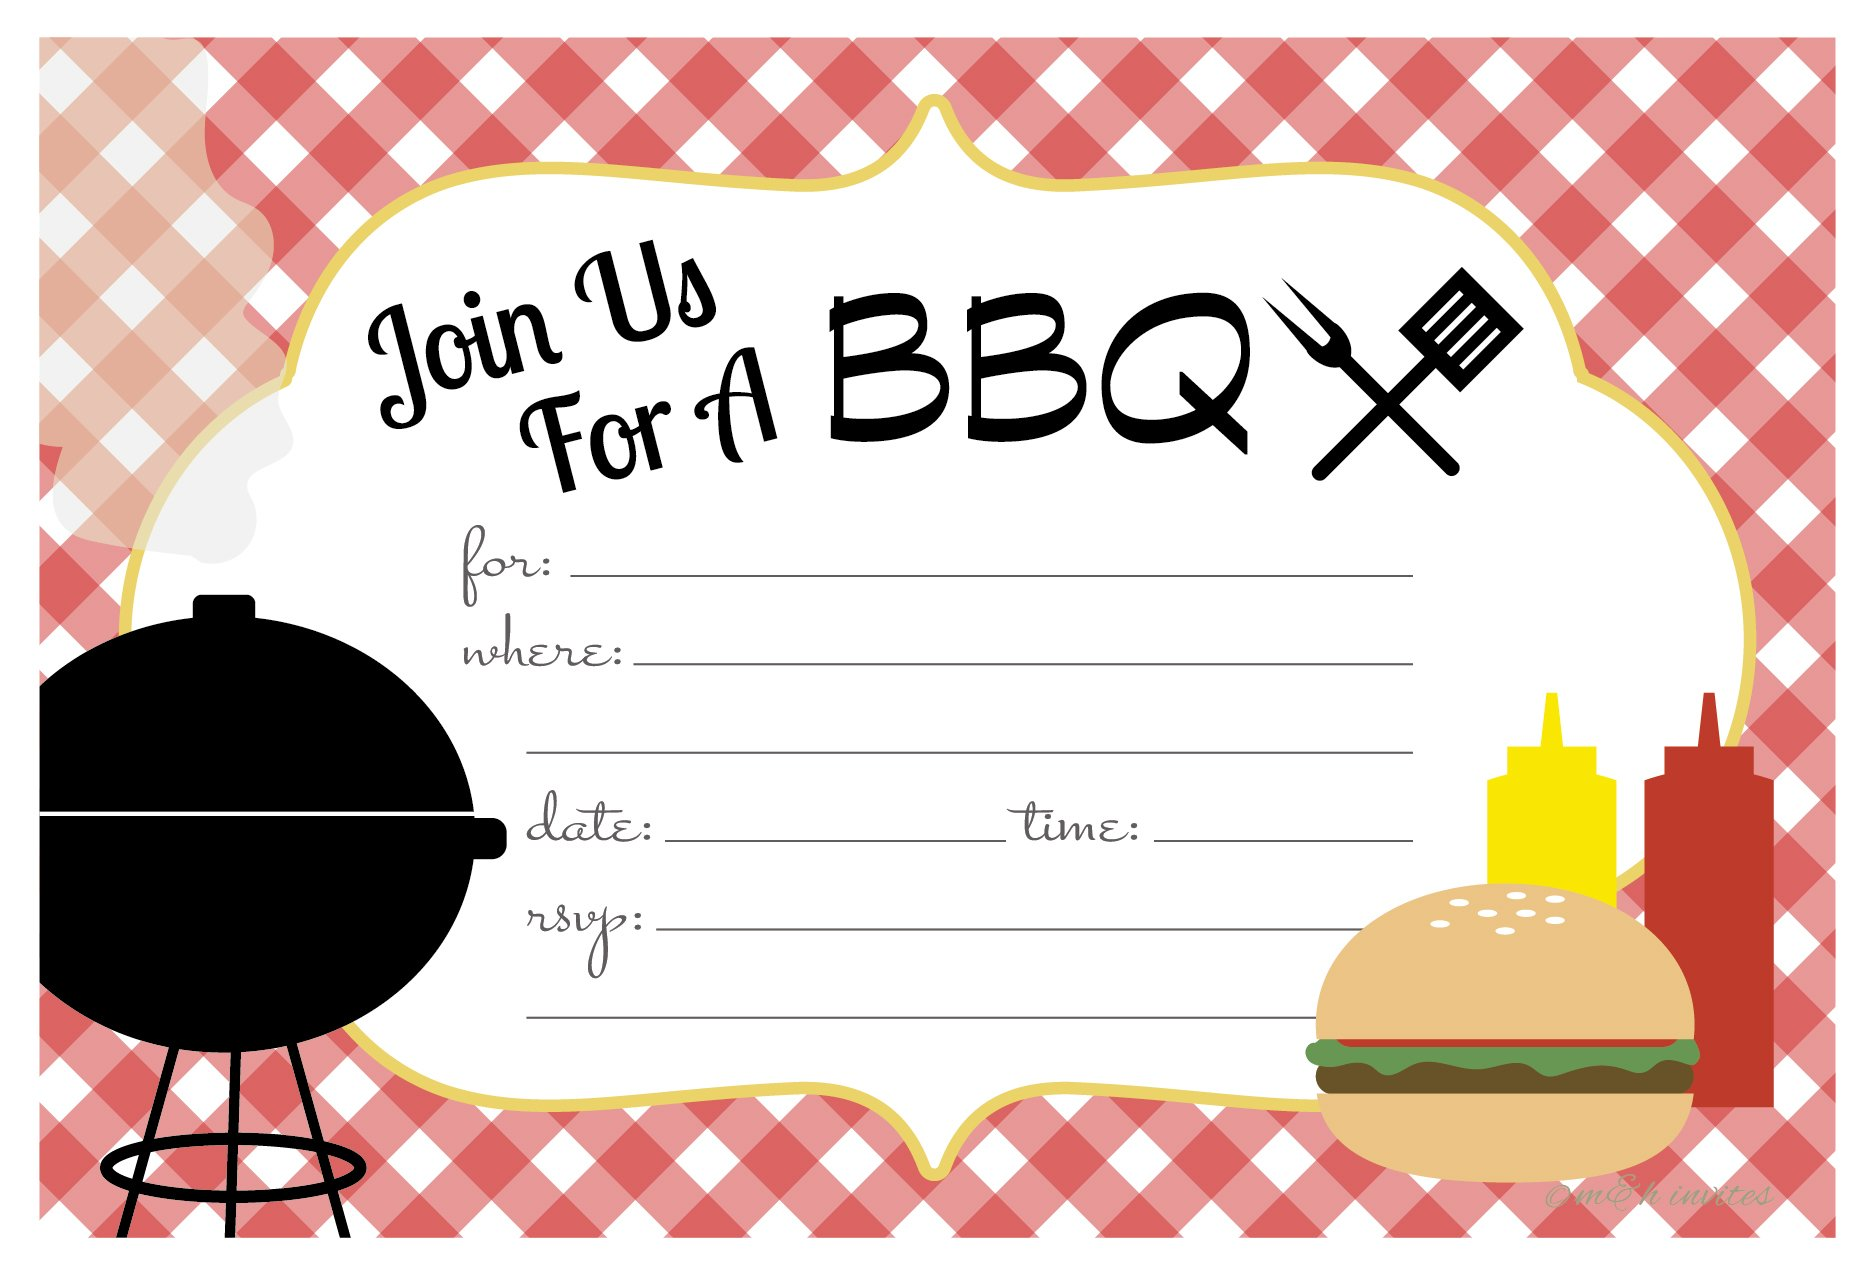 picnic invitations amazon com rh amazon com Raffle Ticket Clip Art Family Barbecue Clip Art